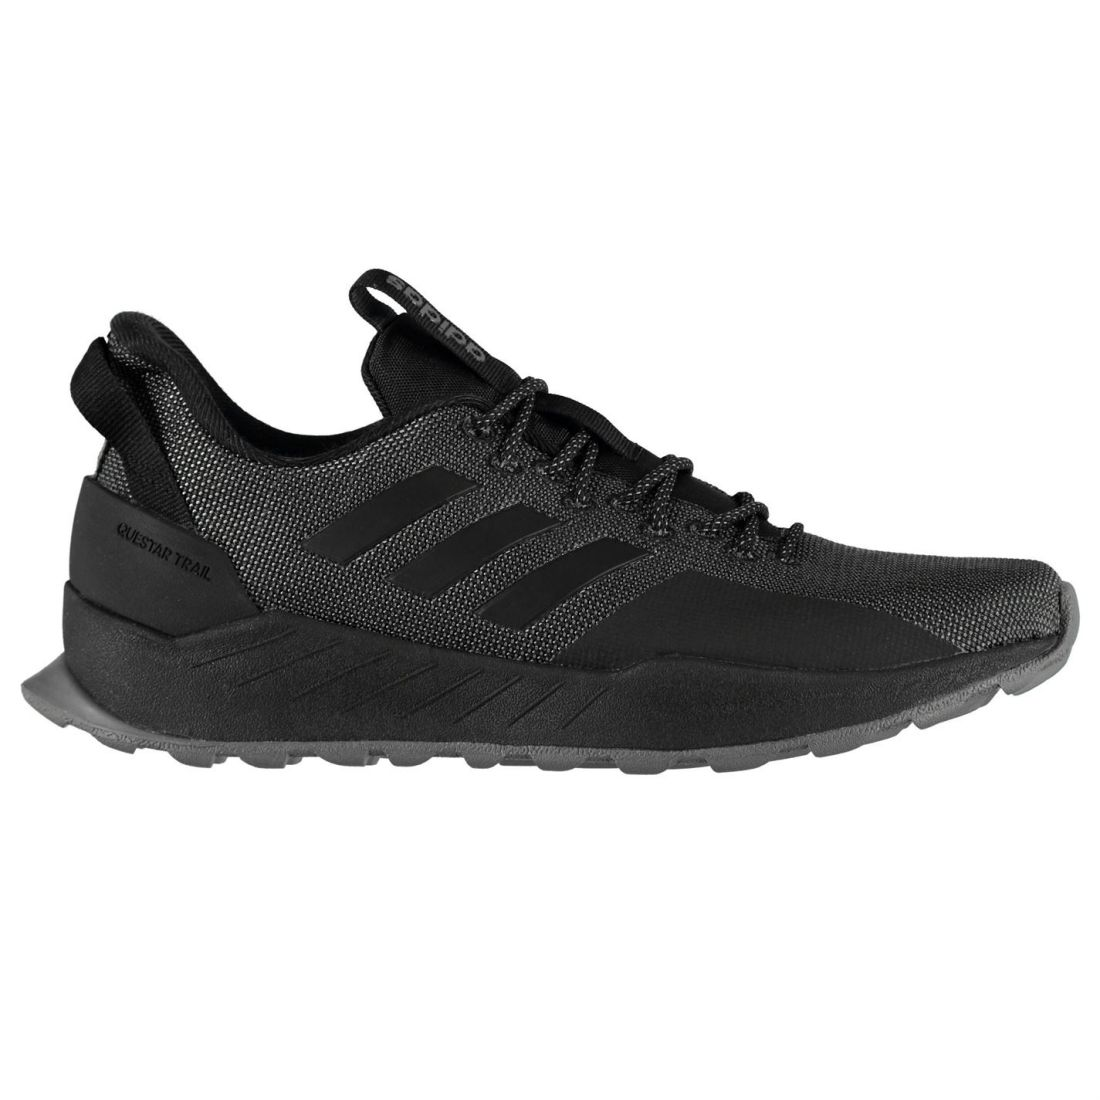 6ac279196 Image is loading Mens-adidas-Questar-Trail-84-Runners-New